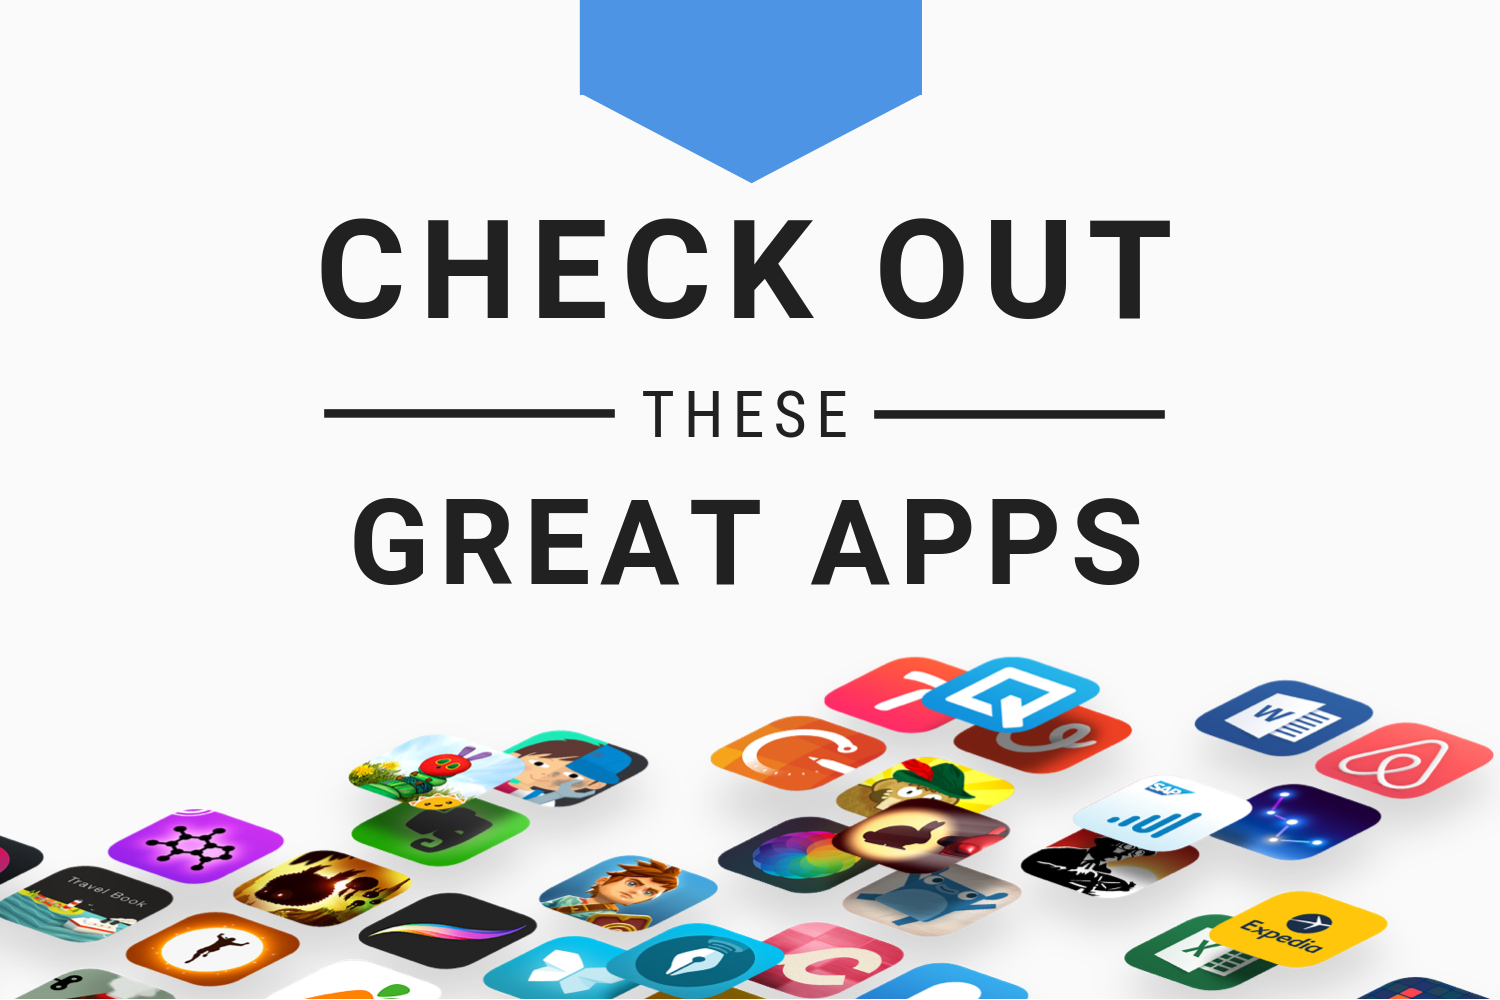 Brill, Thaw, Sticker Stash and other apps to check out this weekend